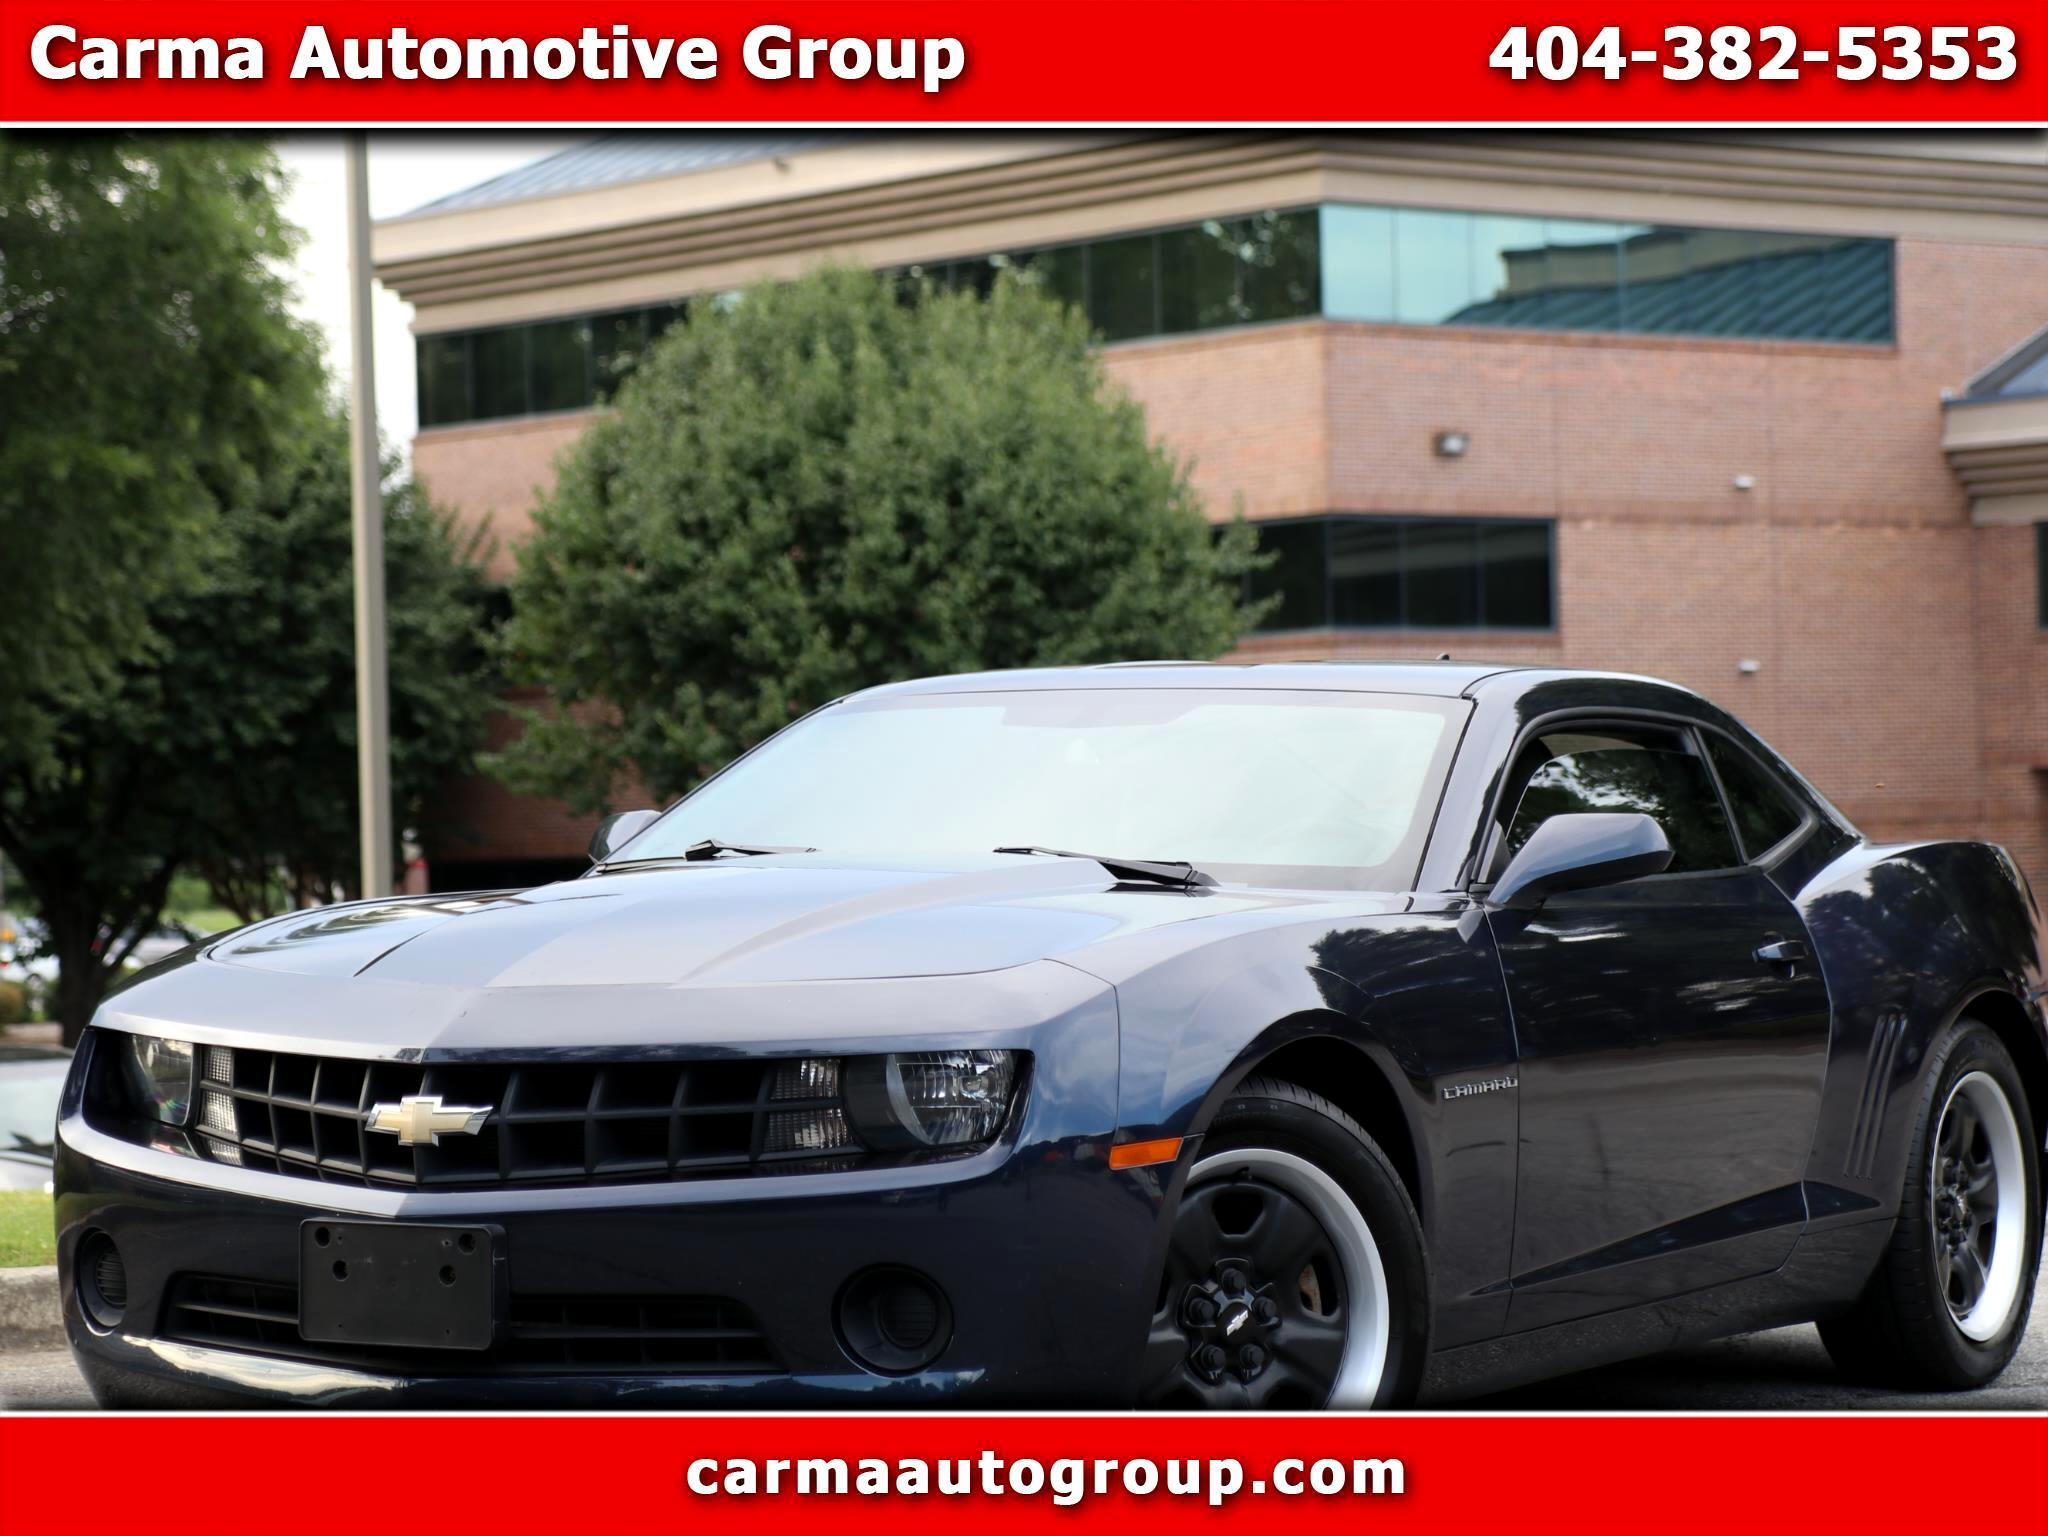 Chevrolet Camaro 1LS Coupe 2013